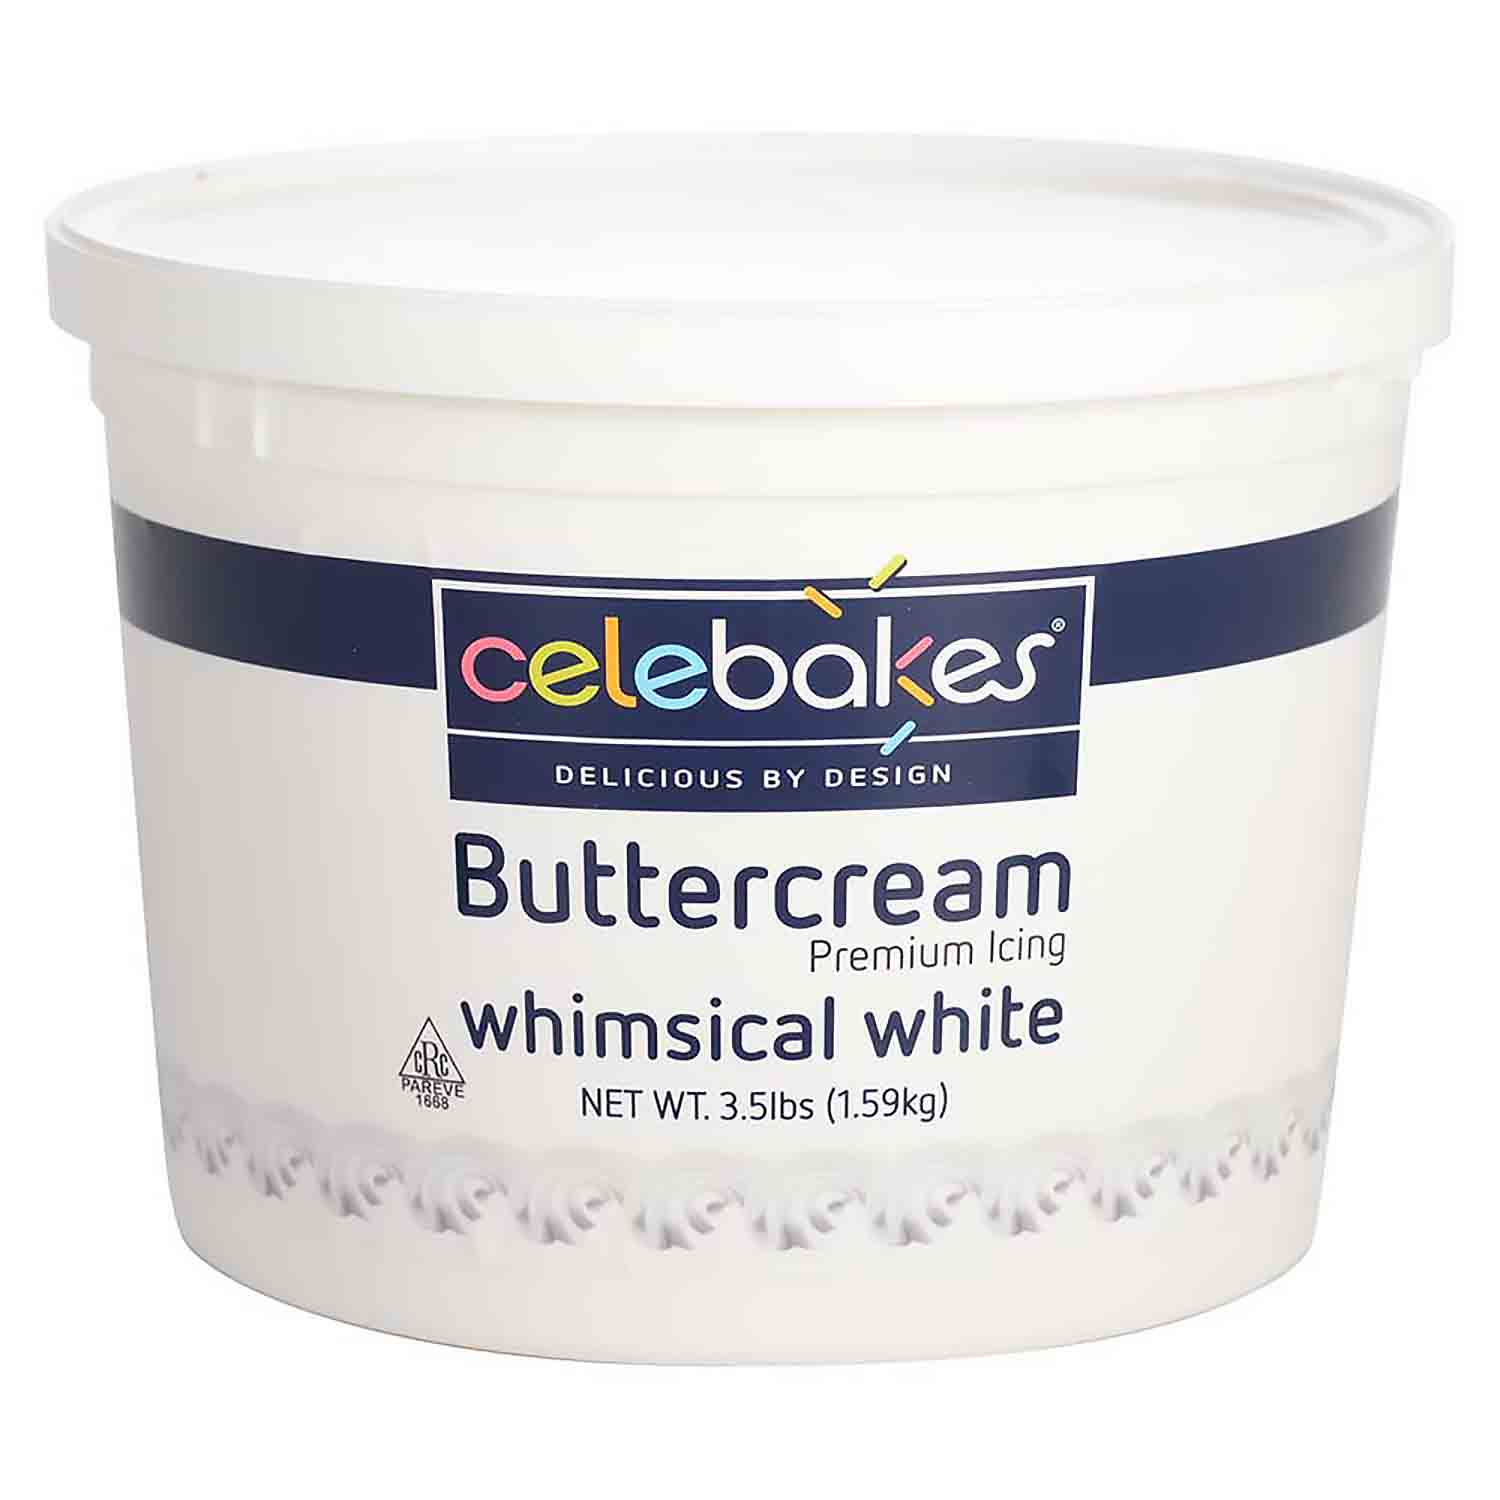 Whimsical White Buttercream Premium Icing